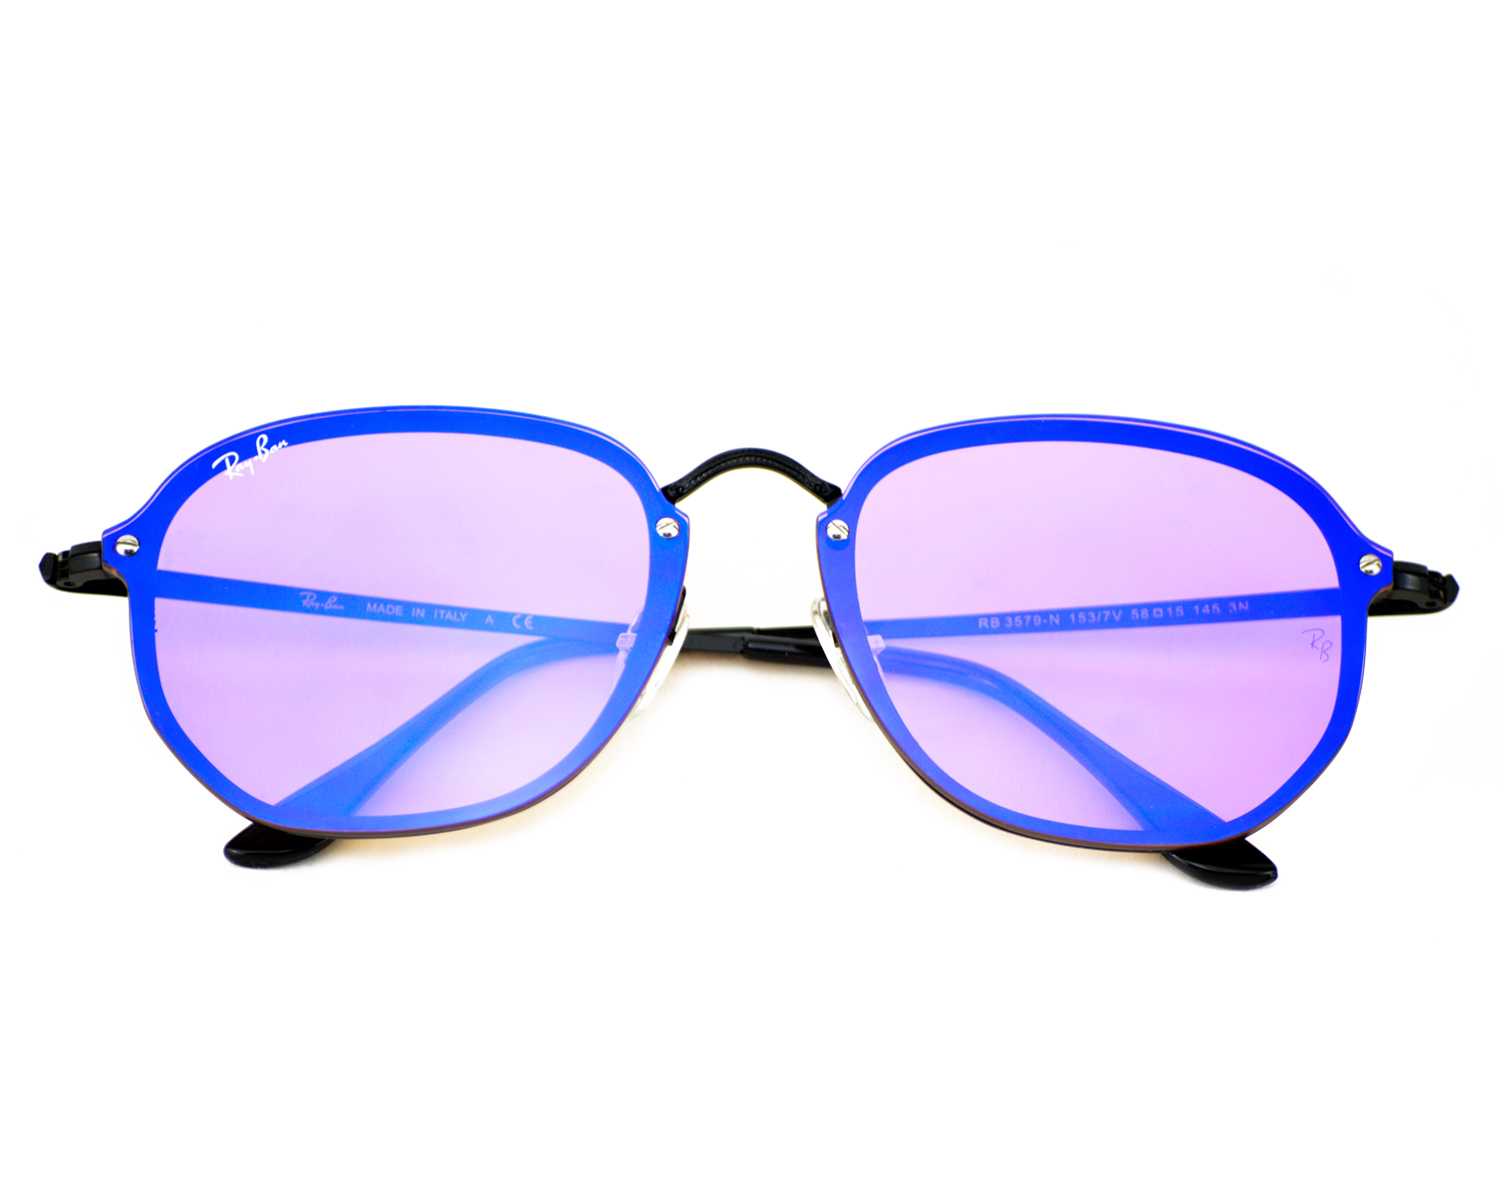 f80d14fc65 Ray-Ban RB3579N Blaze Hexagonal 153 7V Black Frame Violet Blue Mirror  Lenses Unisex Sunglasses 58mm